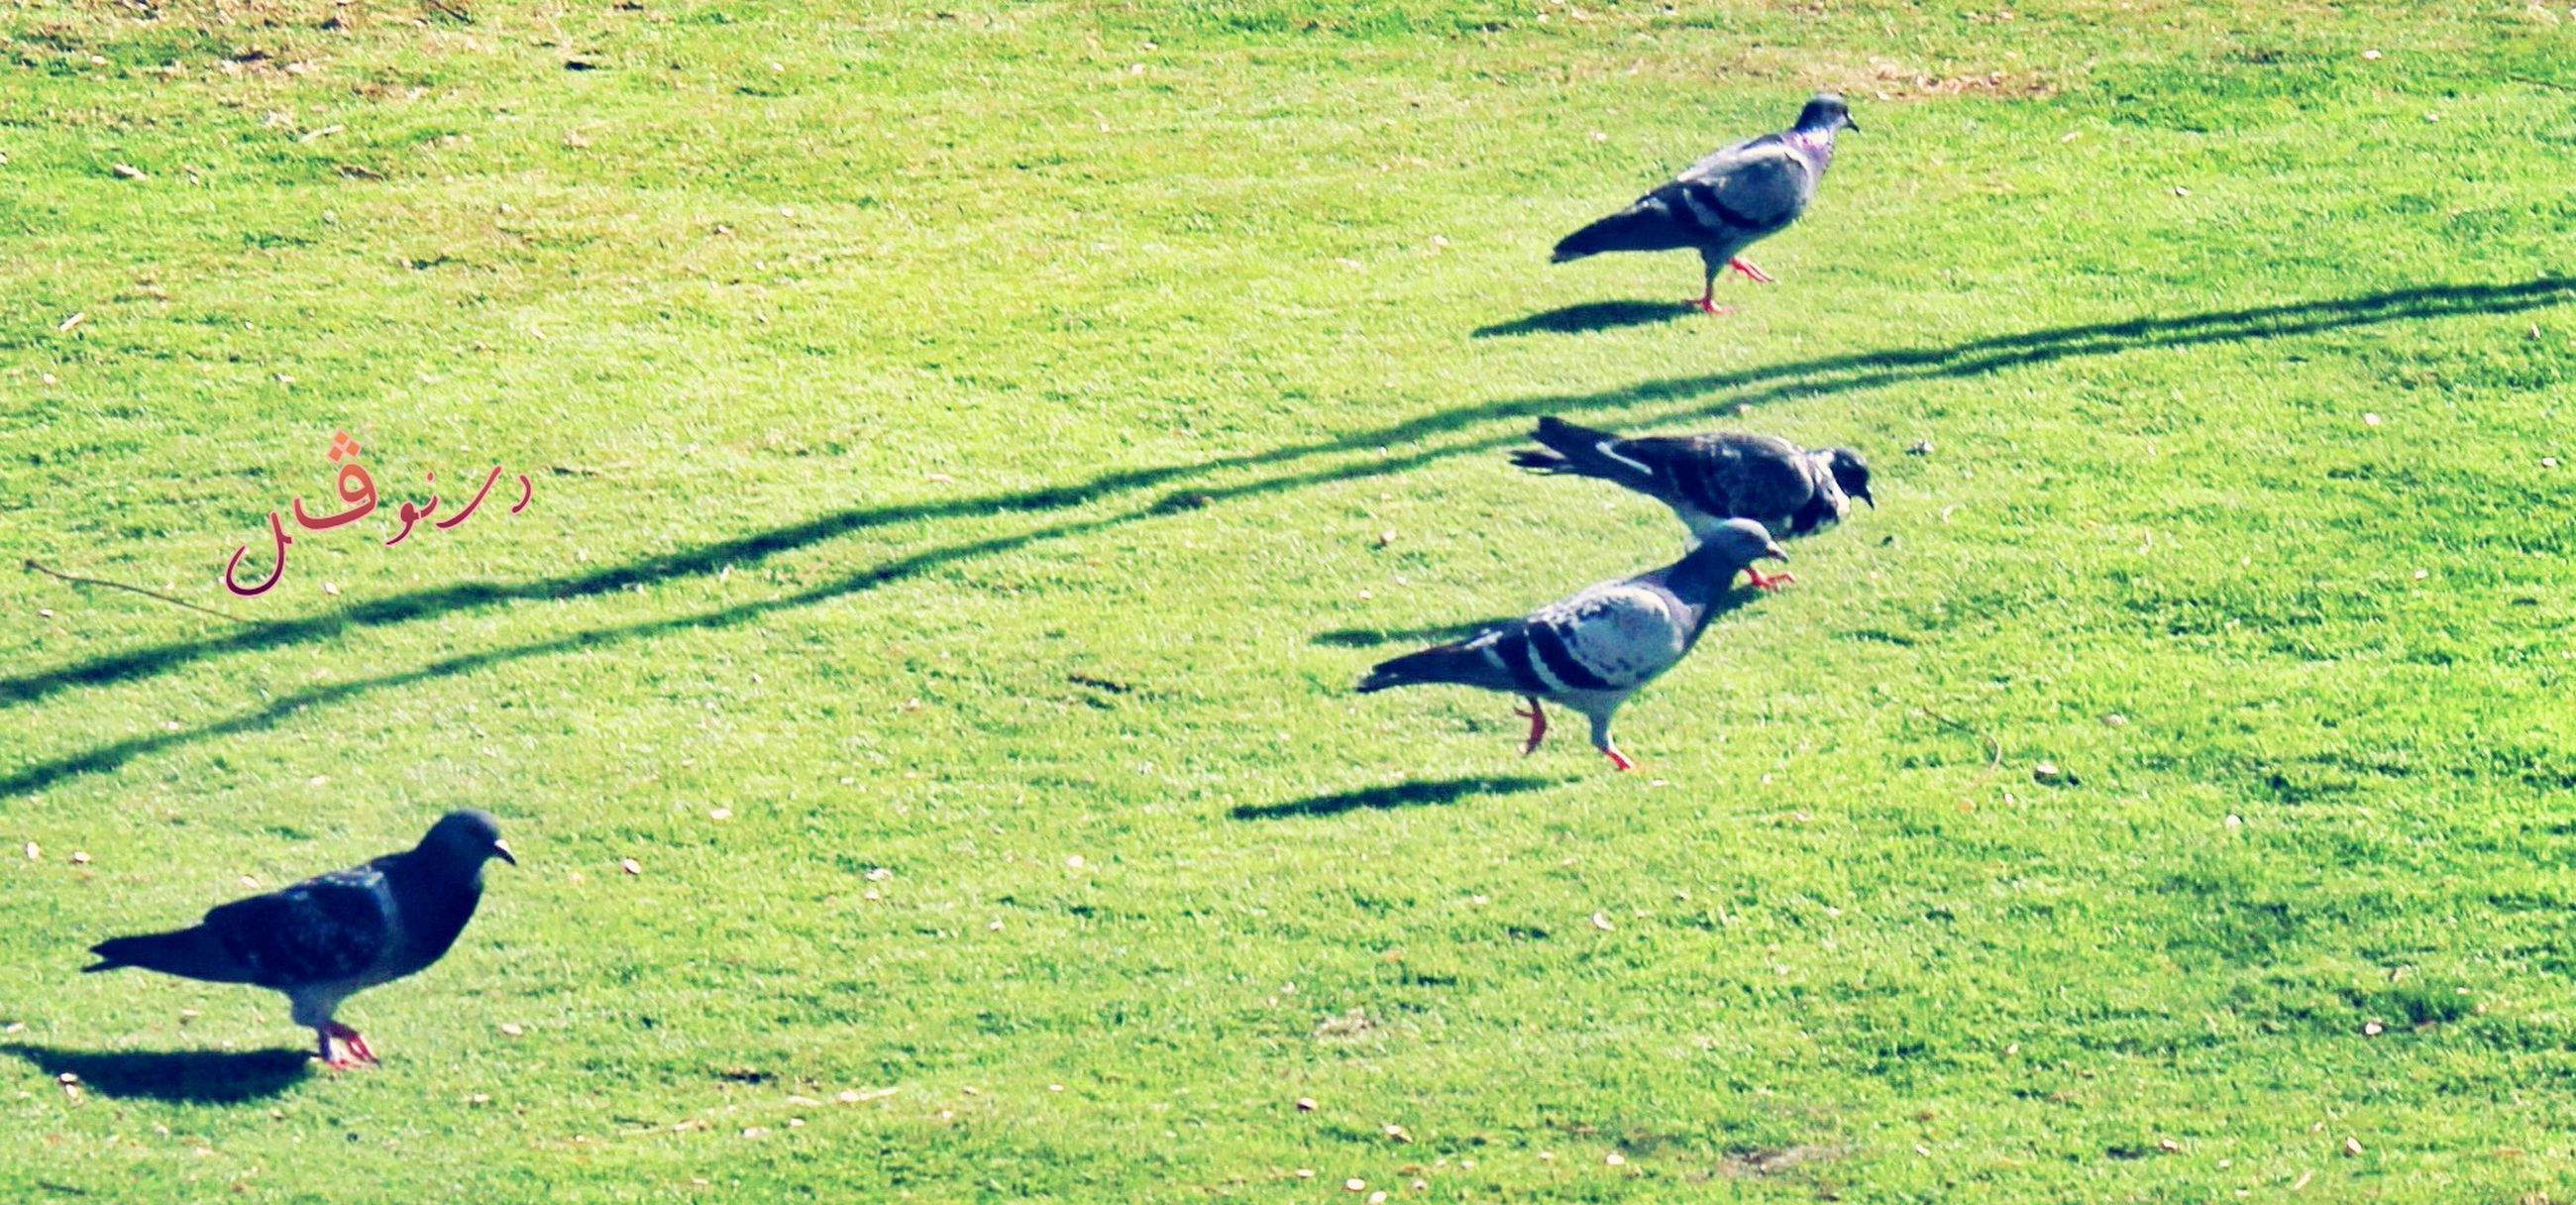 bird, animal themes, grass, animals in the wild, field, wildlife, spread wings, flying, green color, two animals, full length, nature, mid-air, three animals, landscape, no people, sunlight, grassy, beauty in nature, outdoors